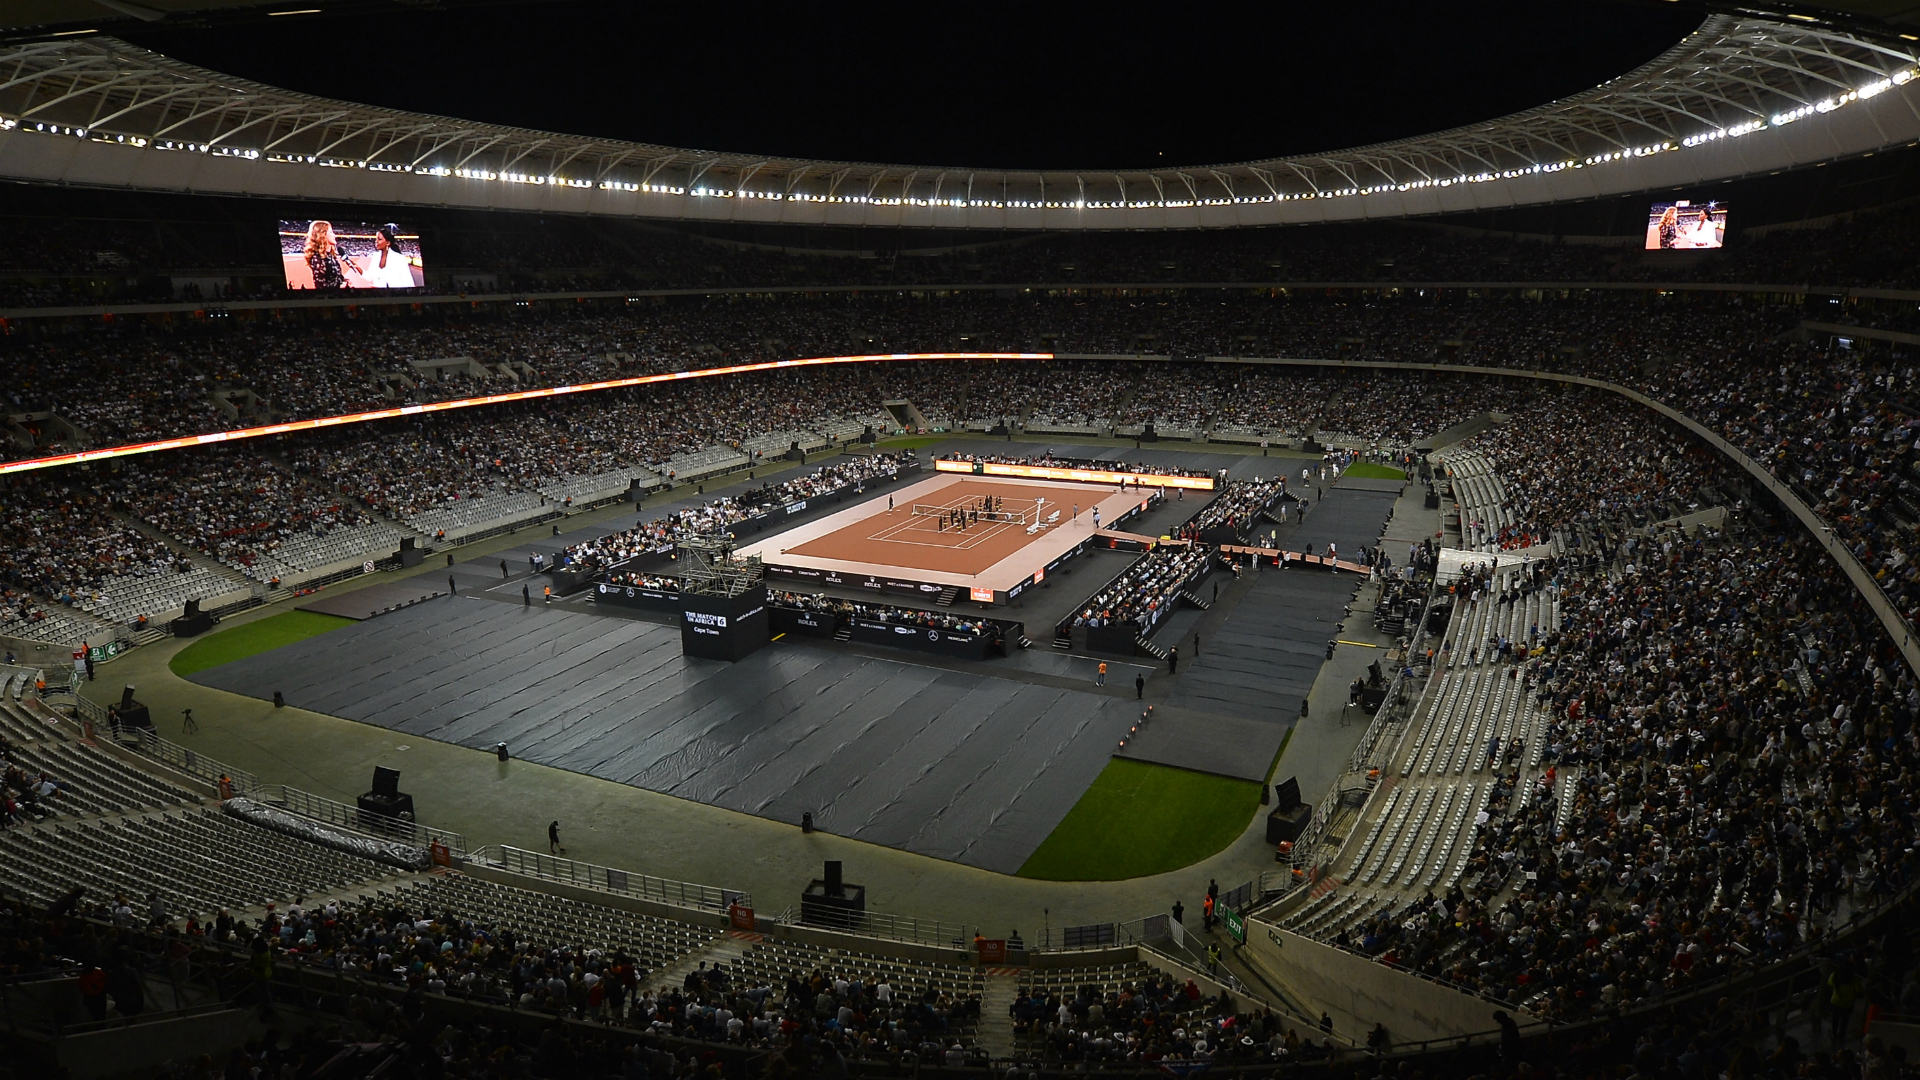 Federer v Nadal attracts record 51,954 fans for #MatchInAfrica